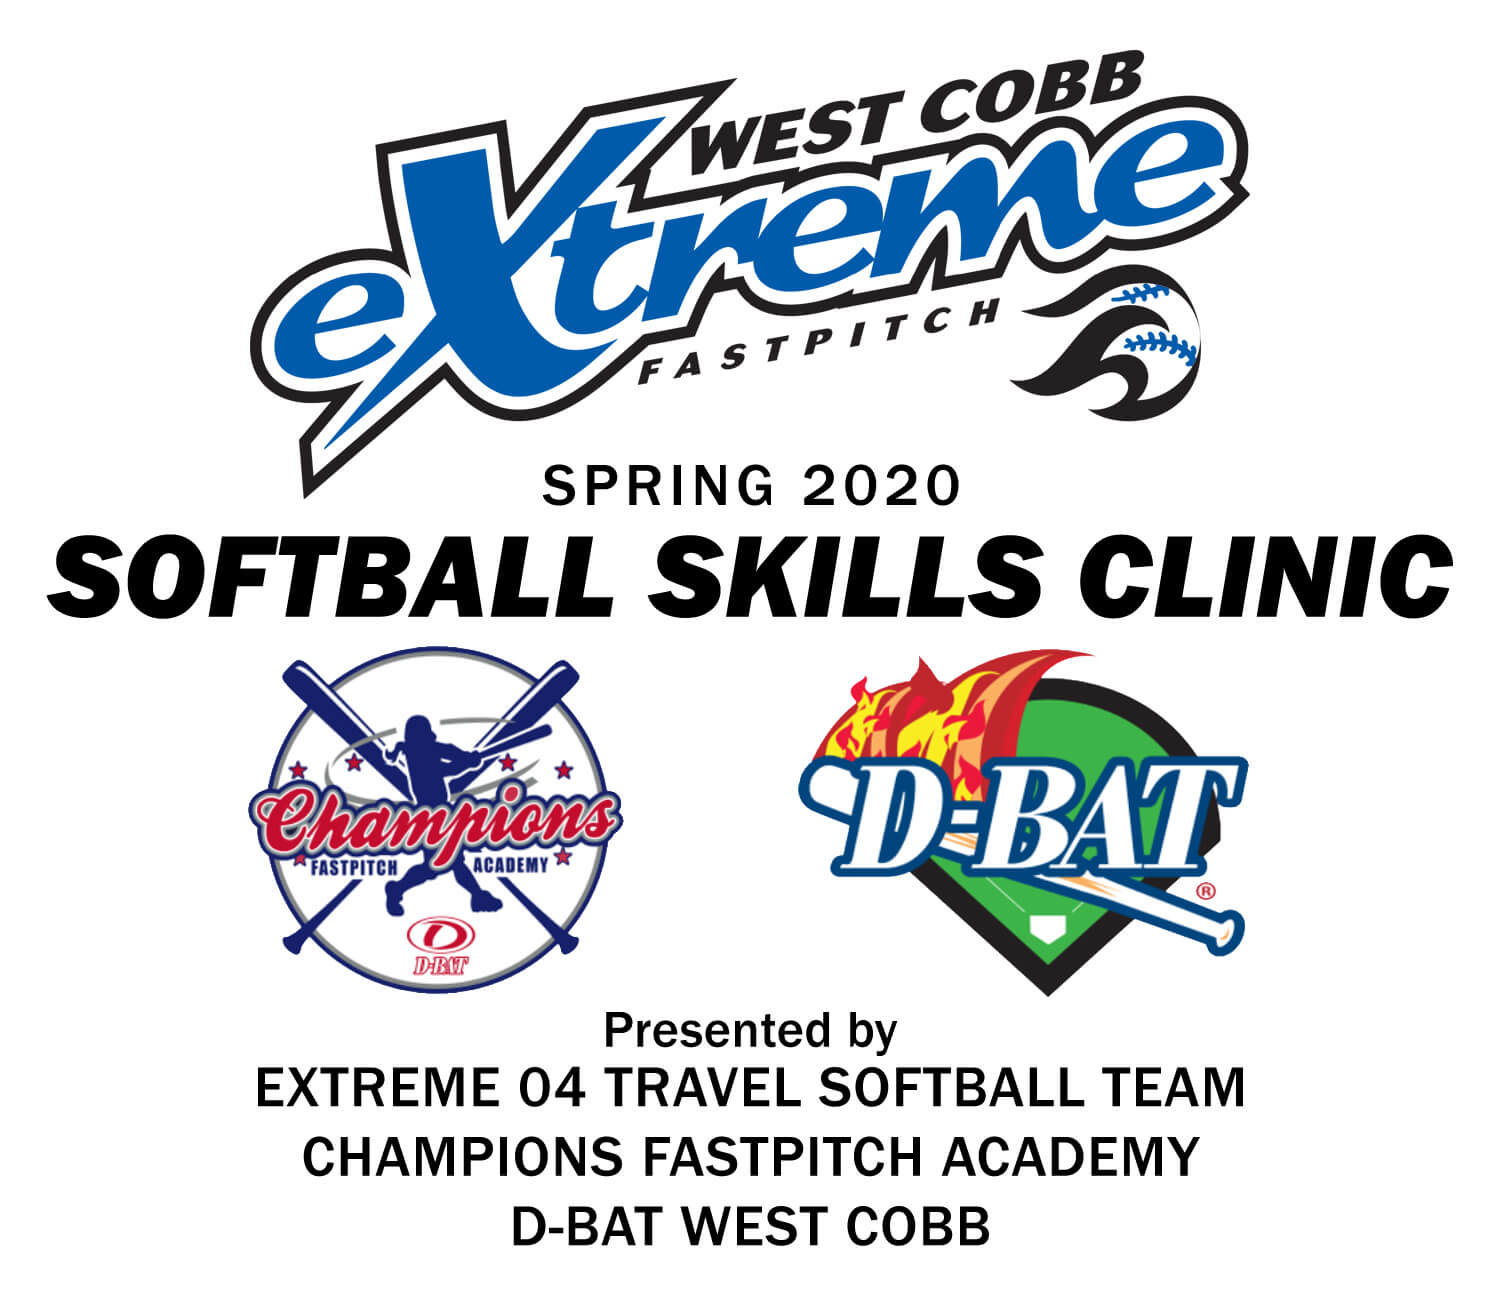 West Cobb Extreme Spring Skills Clinic